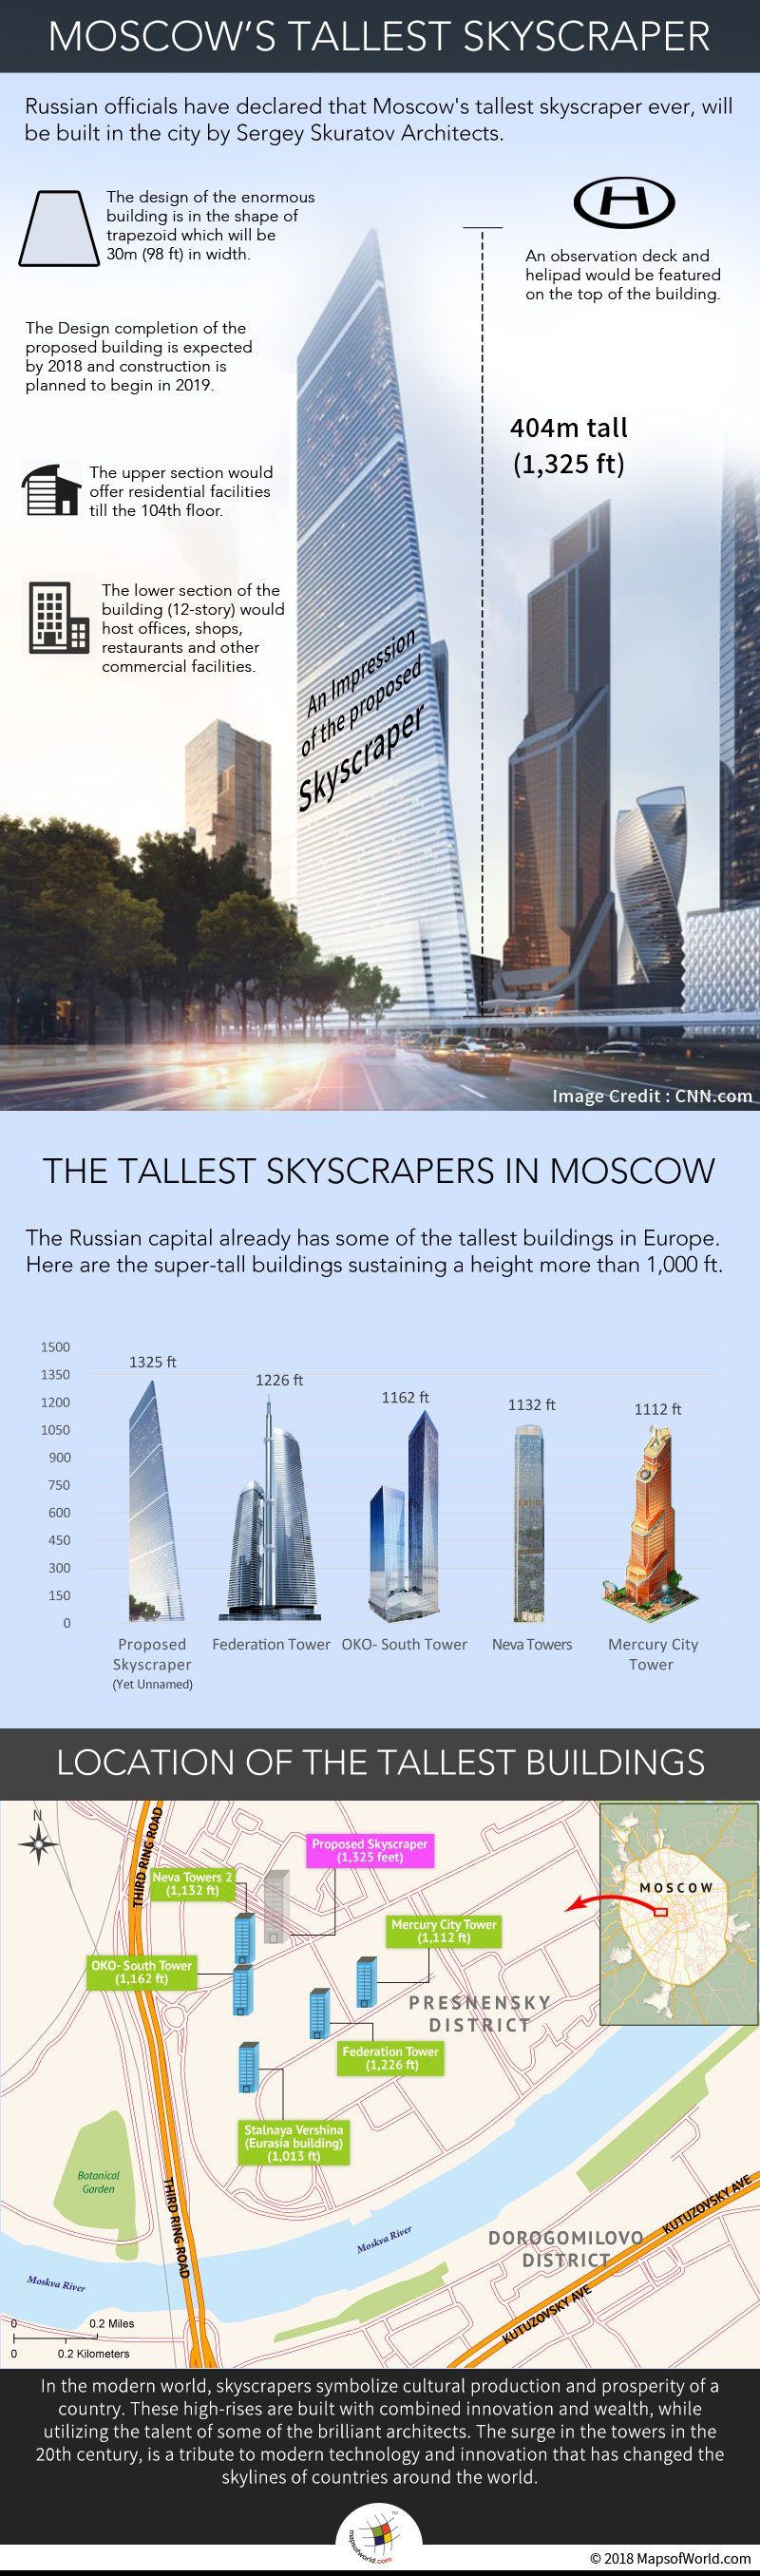 Is Moscow going to build its tallest skyscraper?